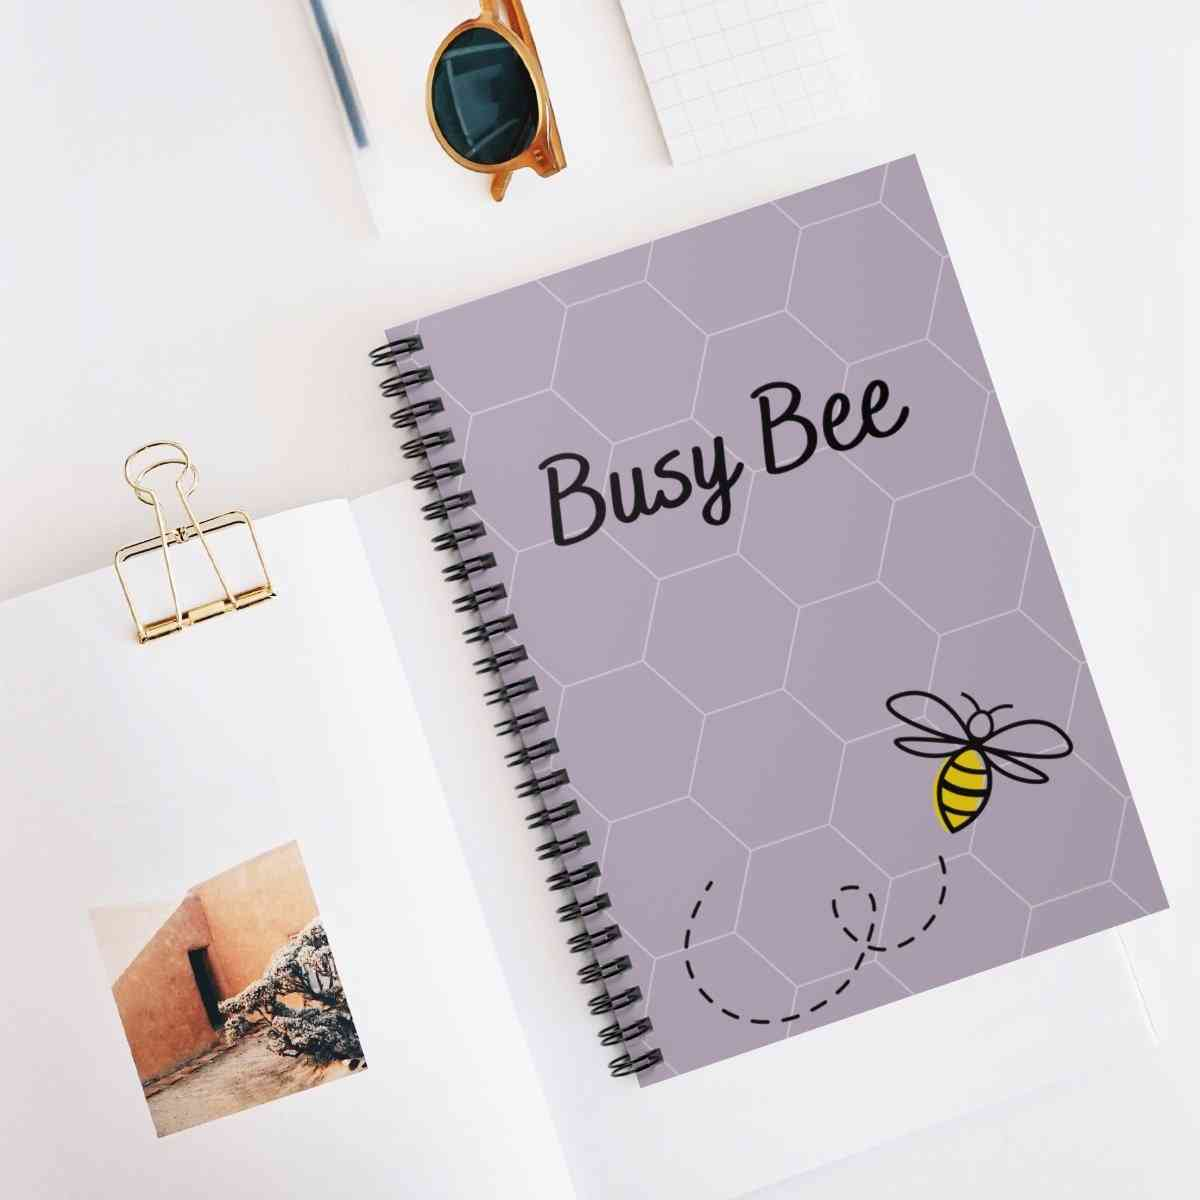 Busy Bee - Daily Planner - Undated 364 Pages